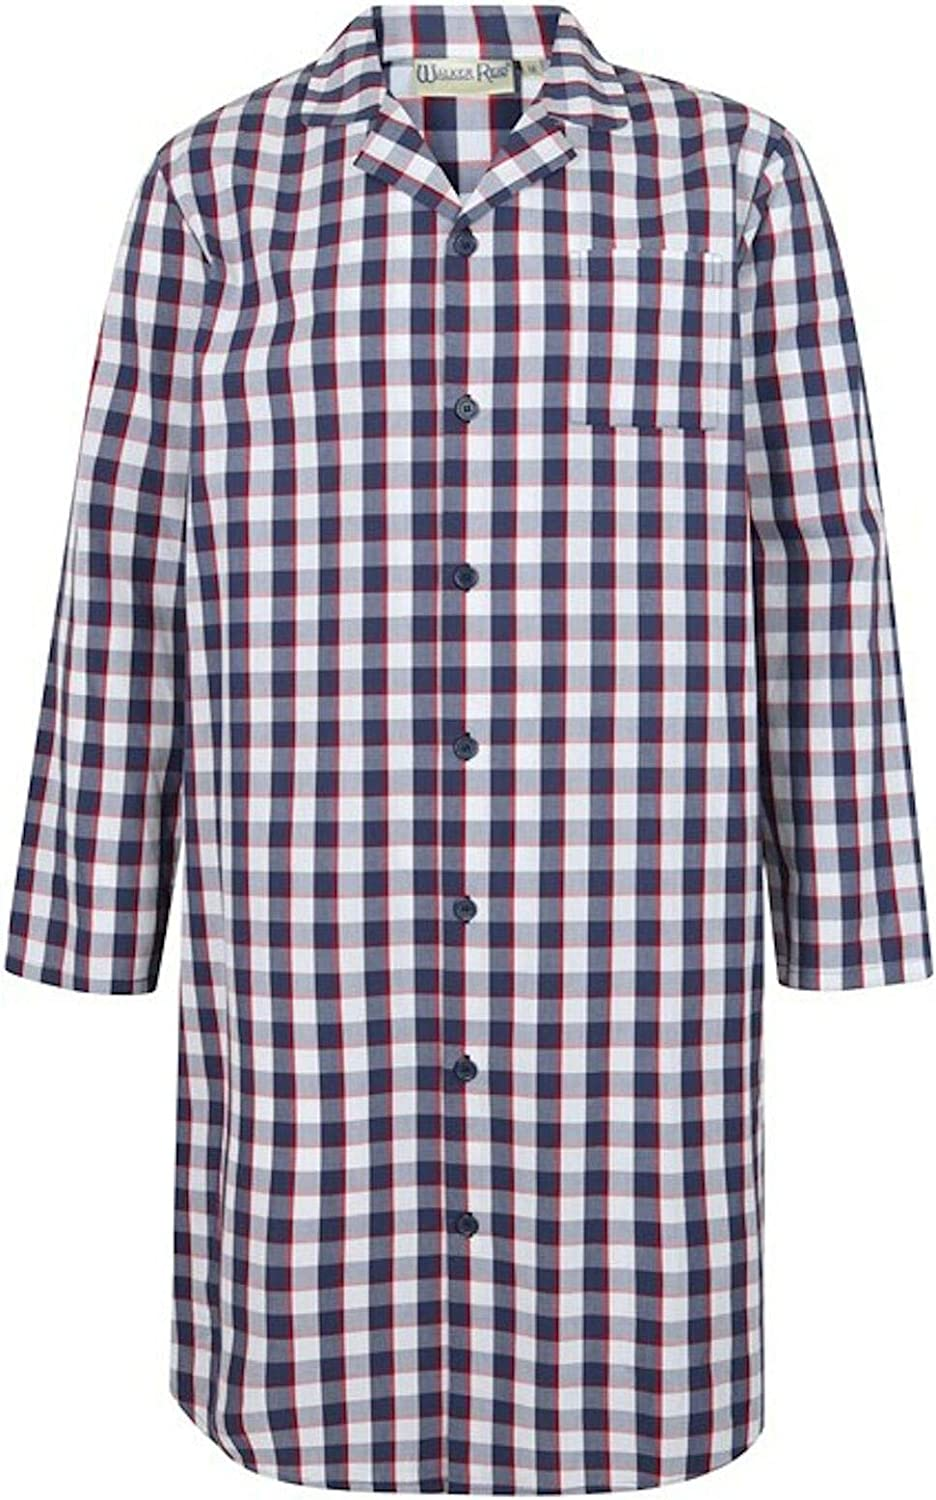 Walker Reid Mens Navy//Red Classic Check 100/% Cotton Long Sleeve Nightshirt Medium-3XL